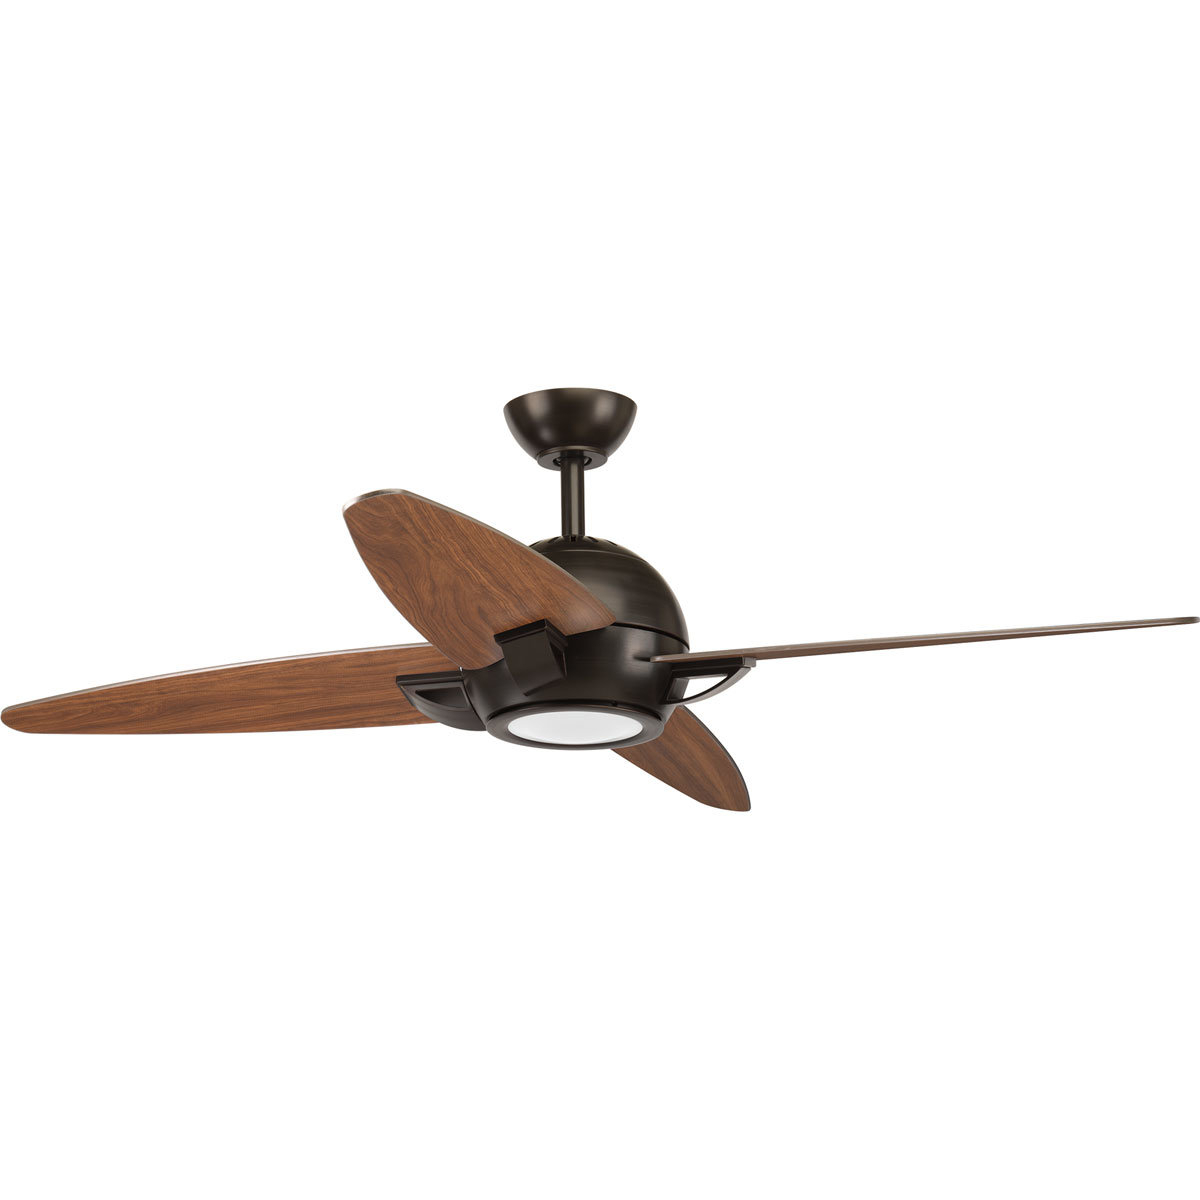 "2020 54"" Dirks 5 Blade Led Ceiling Fan With Remote With Regard To Wilburton 5 Blade Ceiling Fans With Remote (View 1 of 20)"